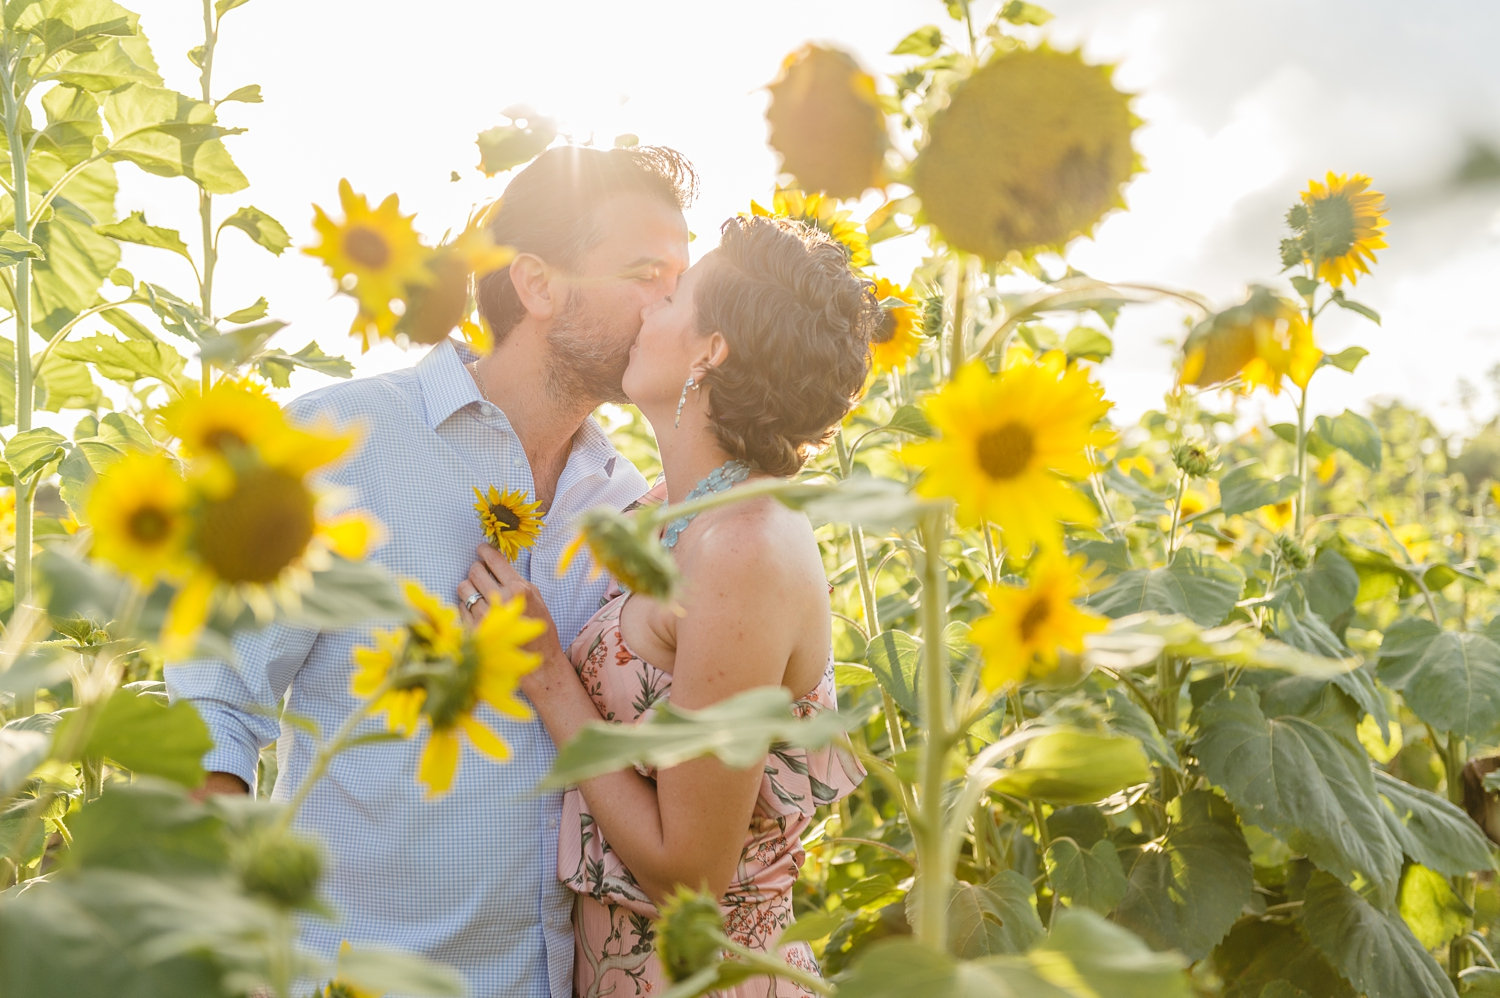 couple kissing in a sunflower field, parents kissing in a sunflower field, Rya Duncklee Photography